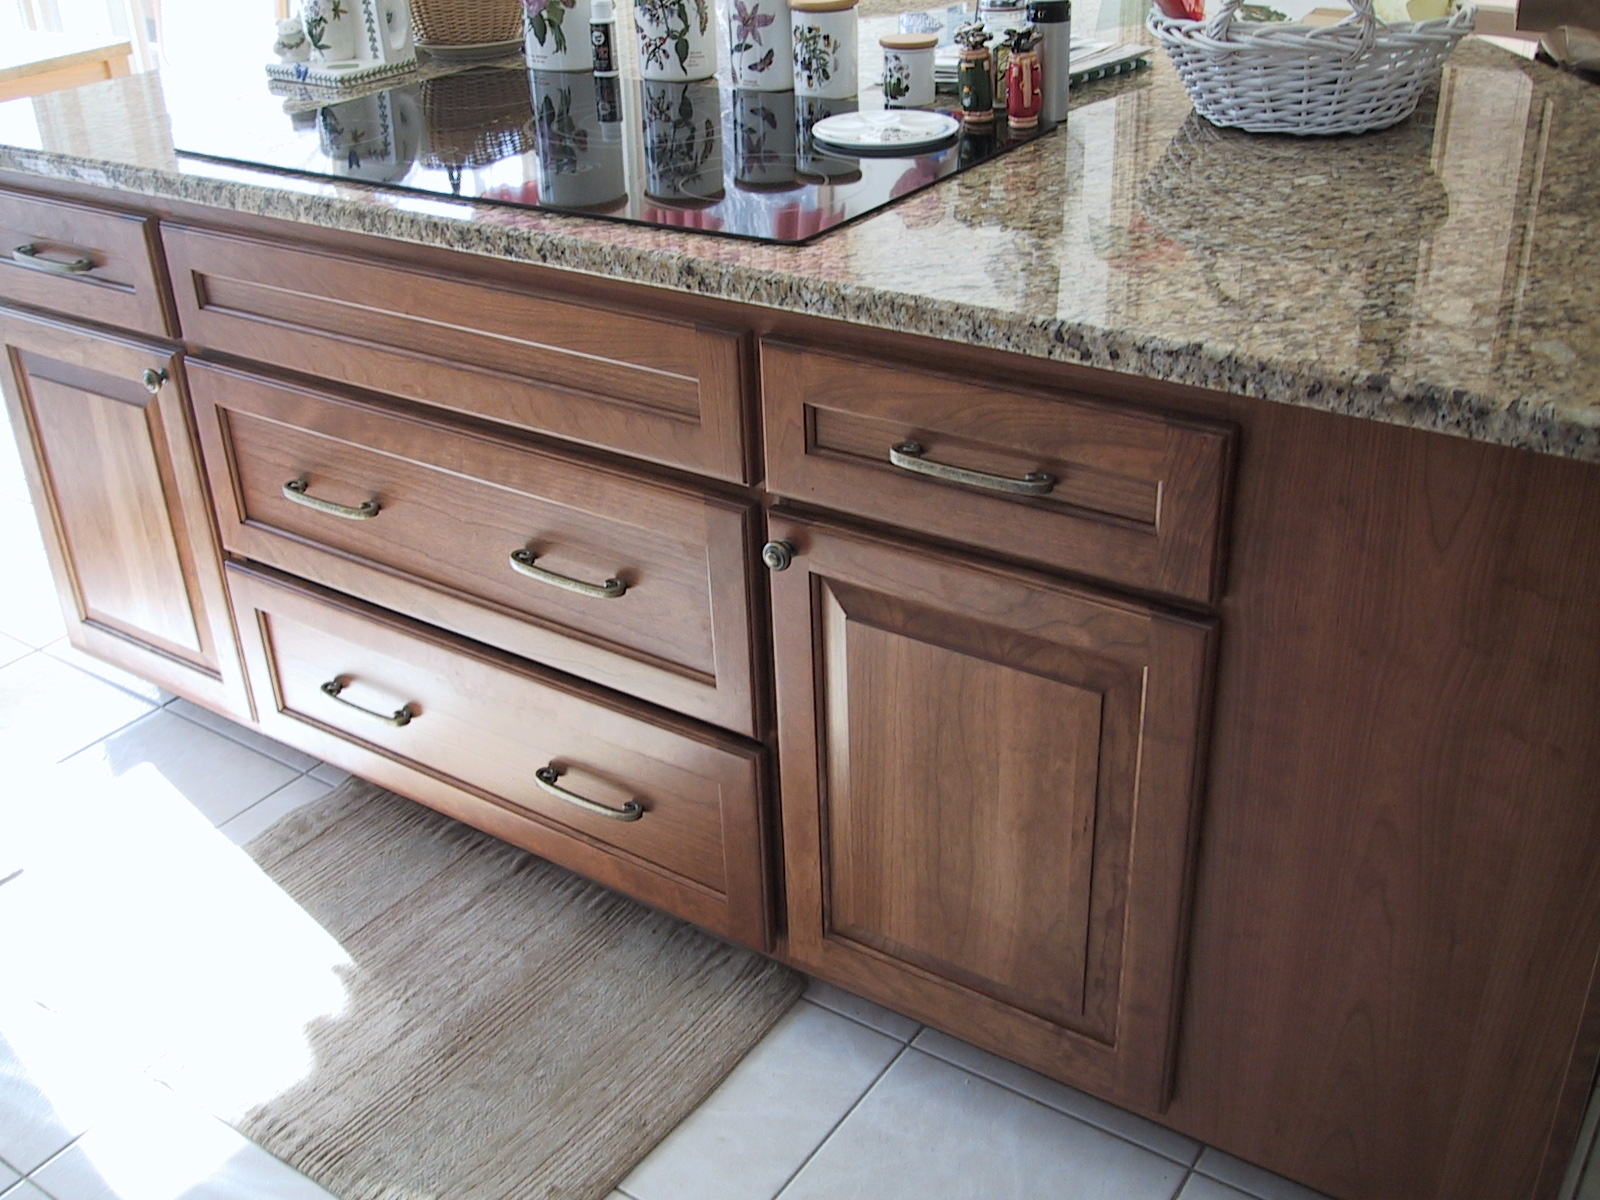 changing countertops in kitchen unfinished wall cabinets replace keep possible